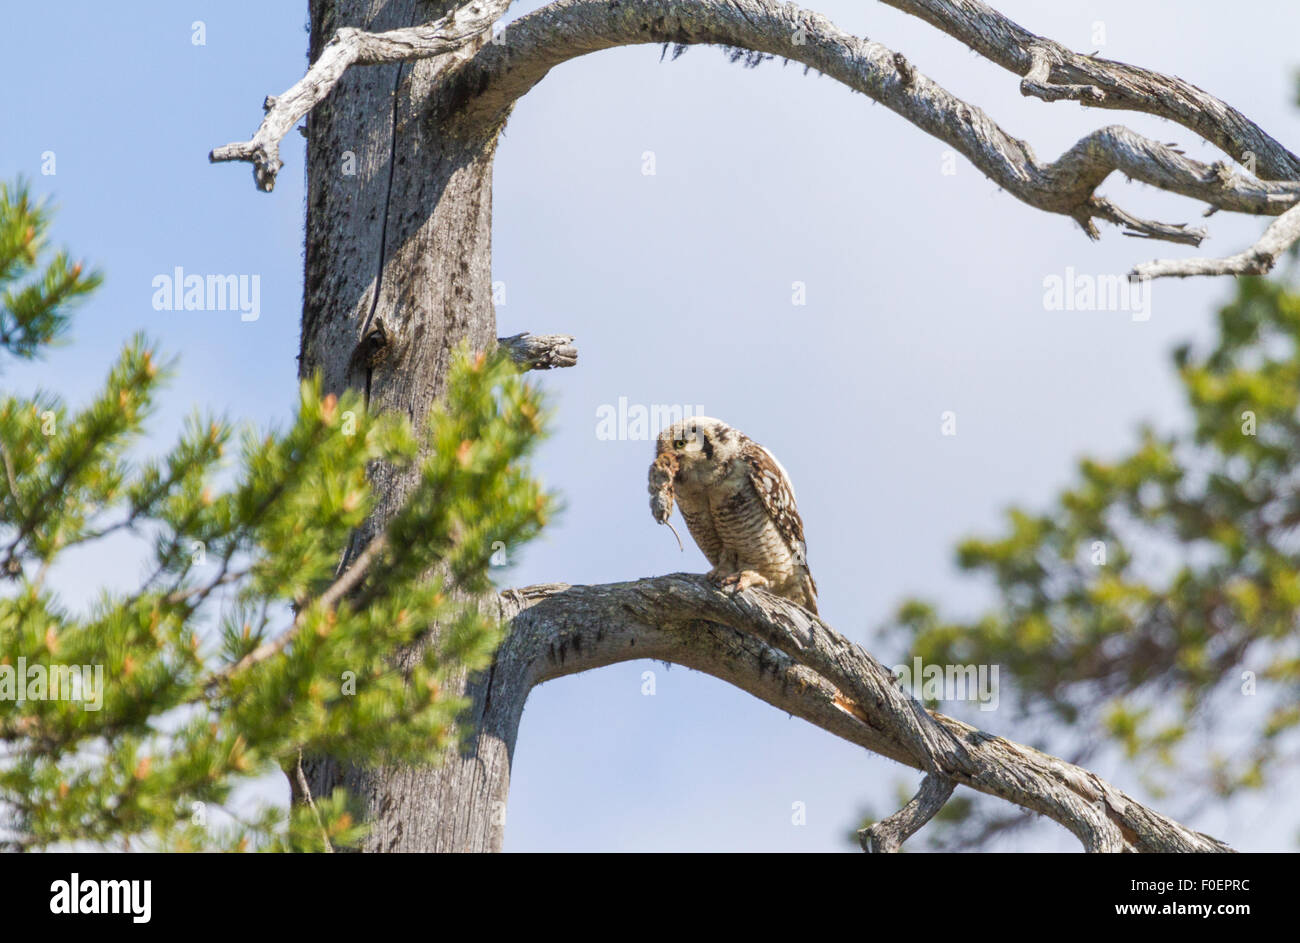 Adult Northern hawk-owl, Surnia ulula, sitting in an old tree with a vole in his beak, Gällivare, Swedish Lapland, - Stock Image